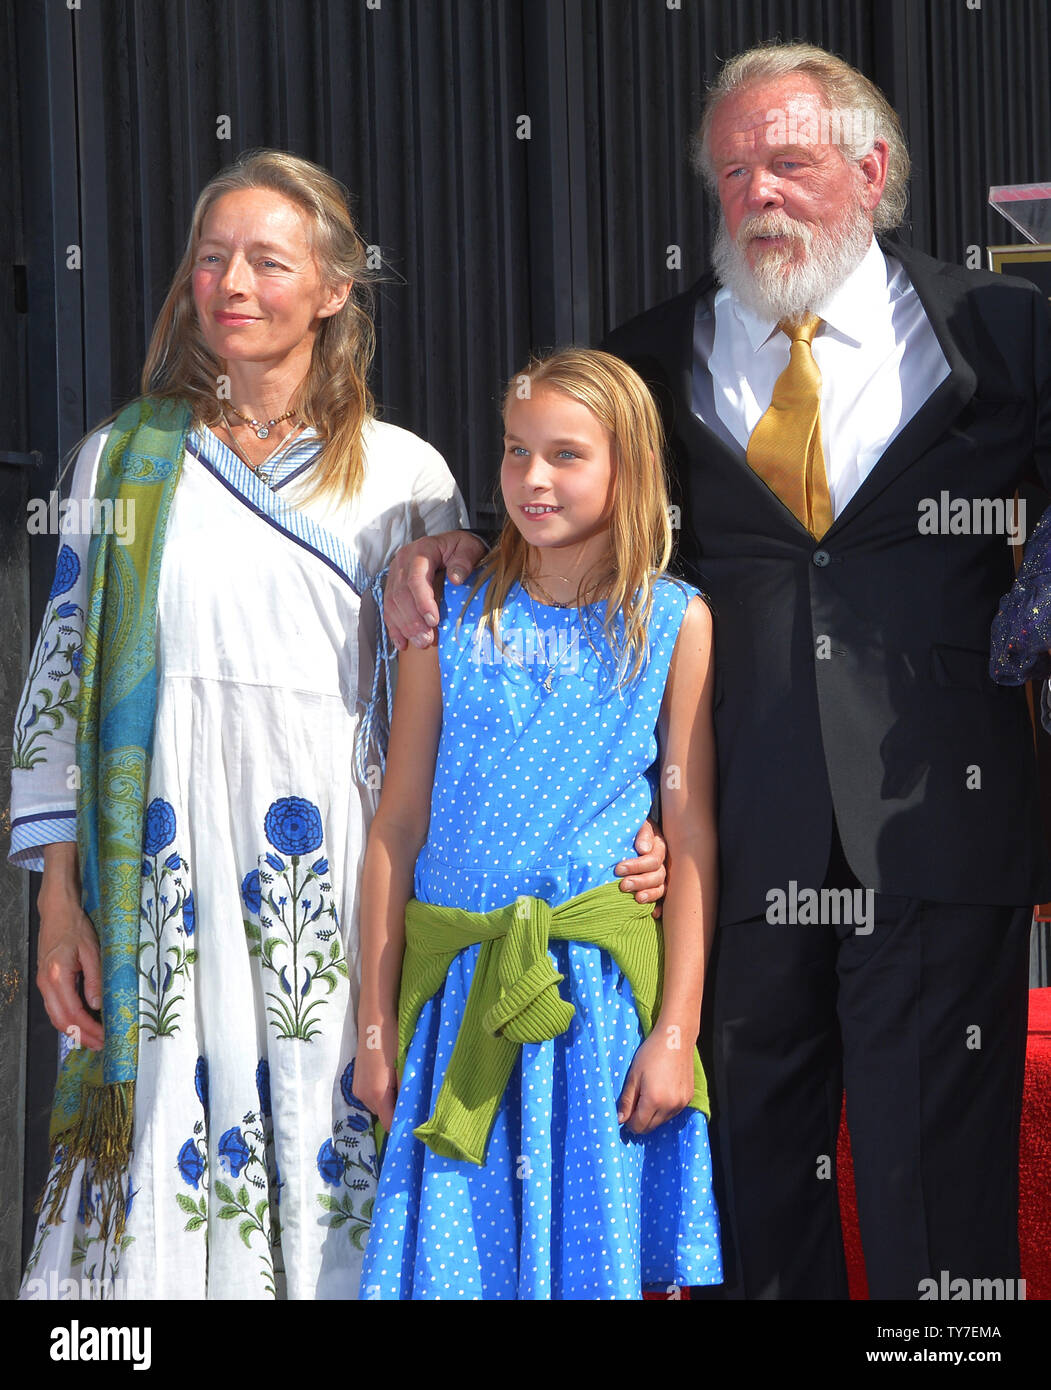 Actor Nick Nolte is joined by his wife Clytie Lane and ...